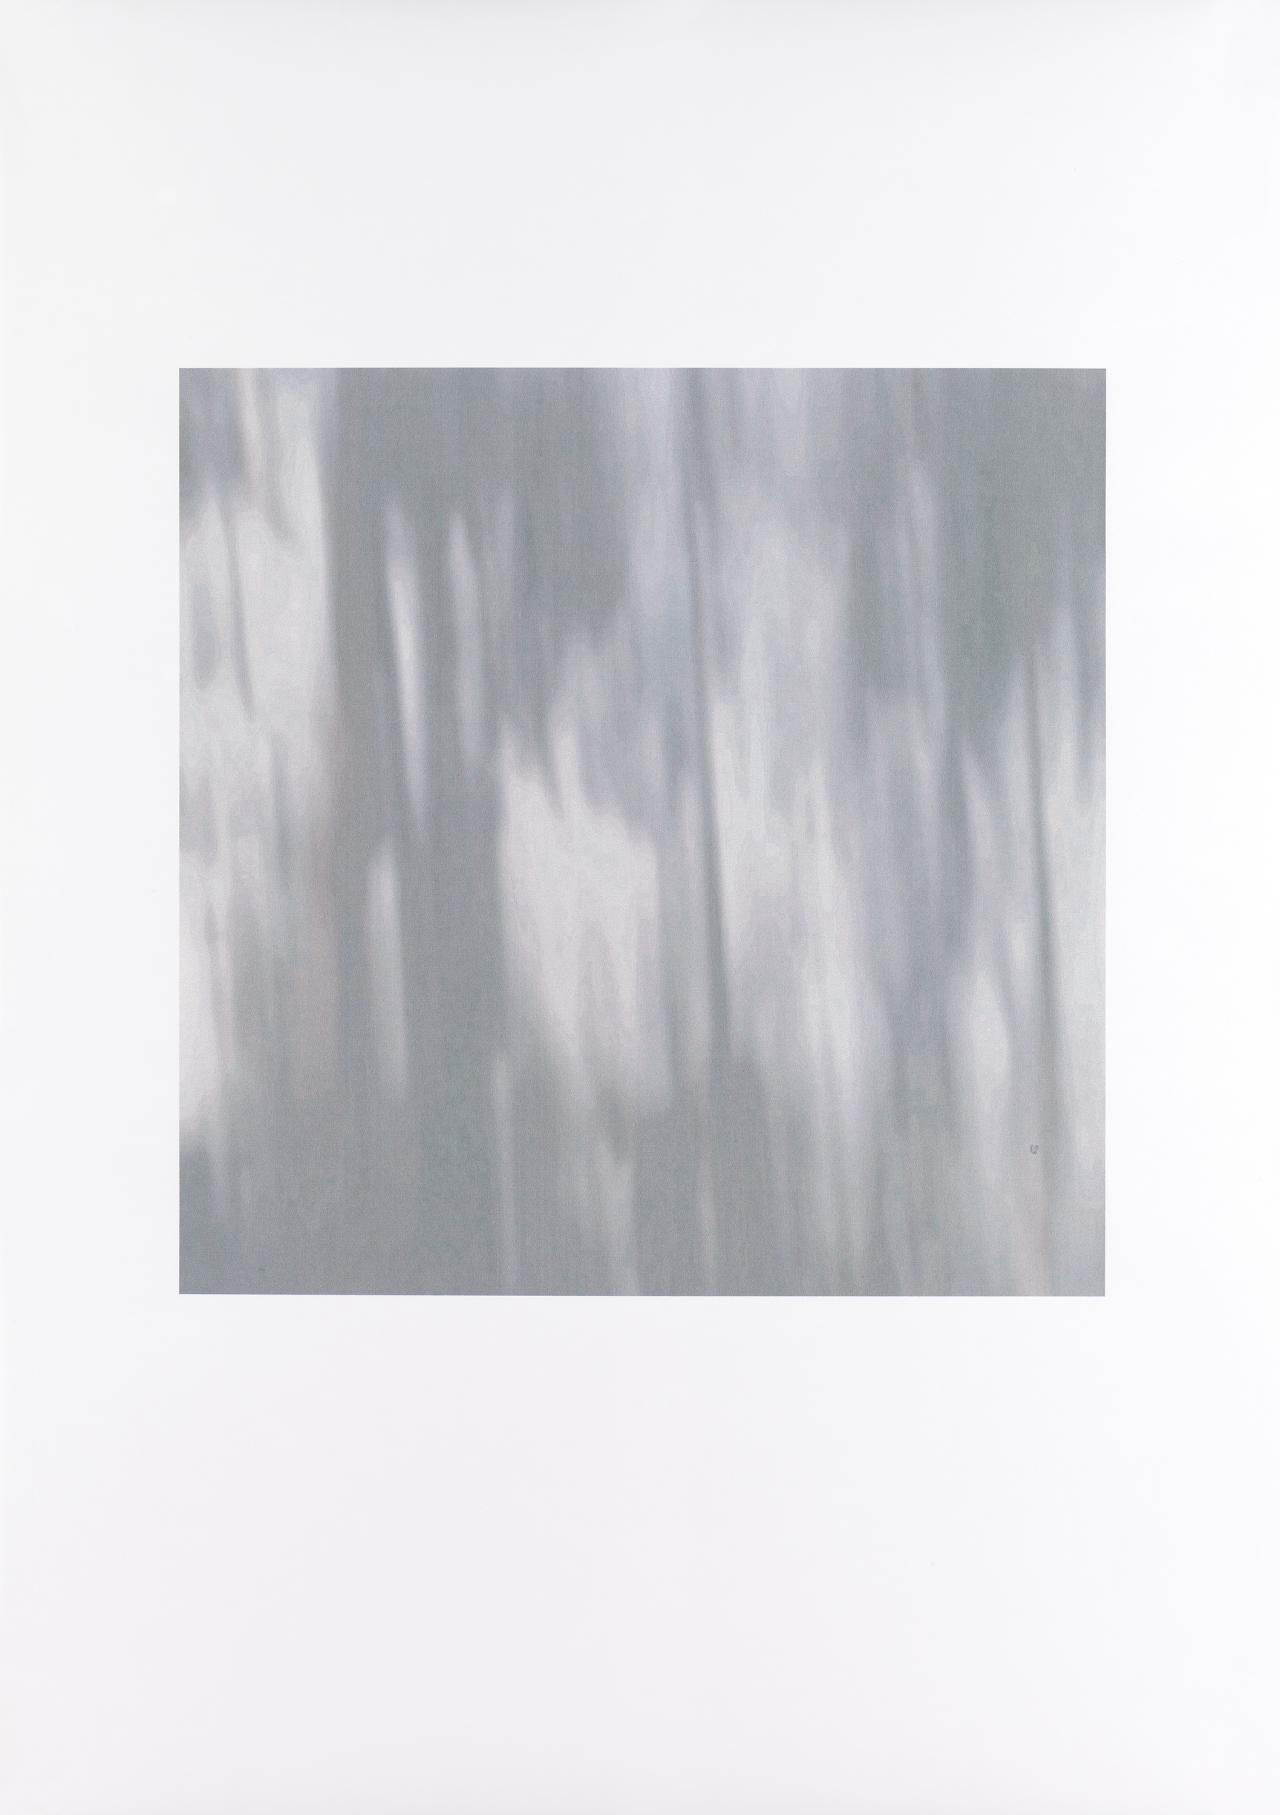 Untitled (Ghost gum)